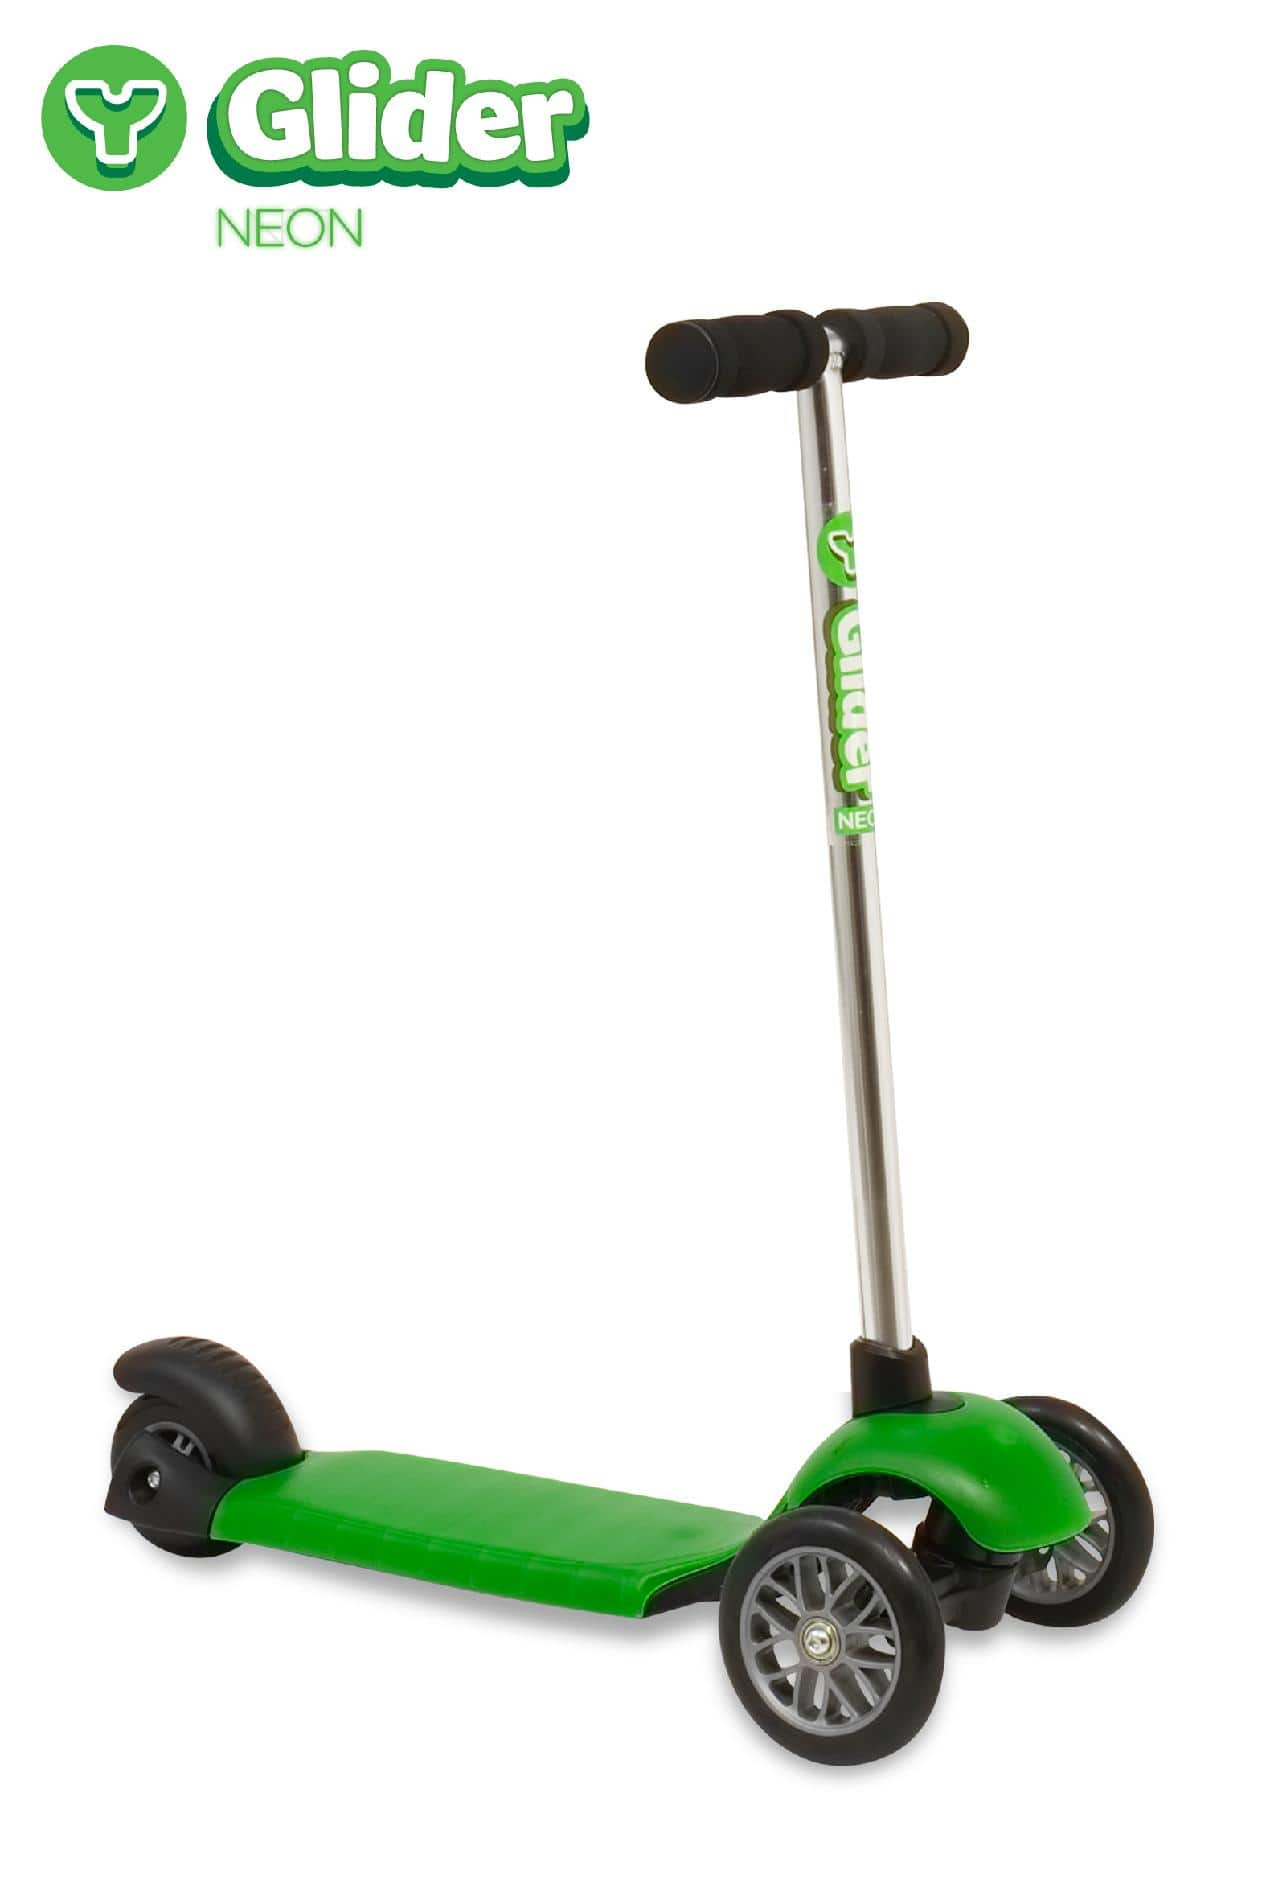 Yvolution Y Glider Neon Green Scooter $20 + Free Store Pickup